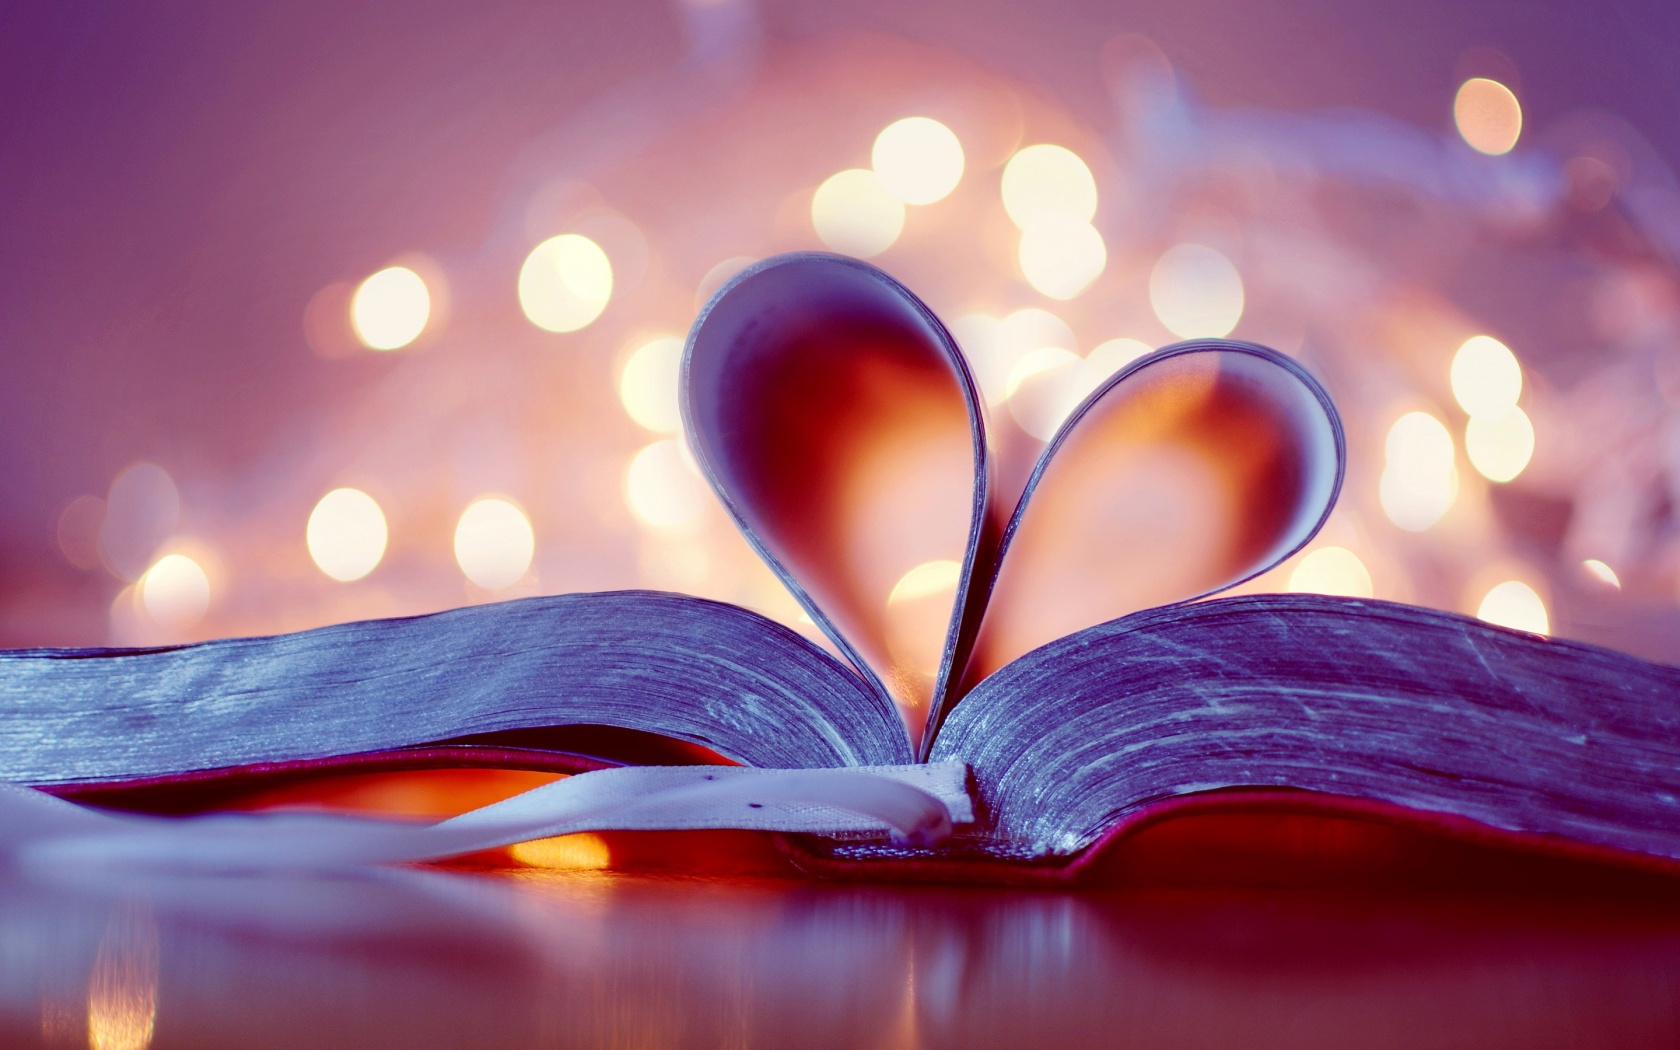 heart wallpapers book